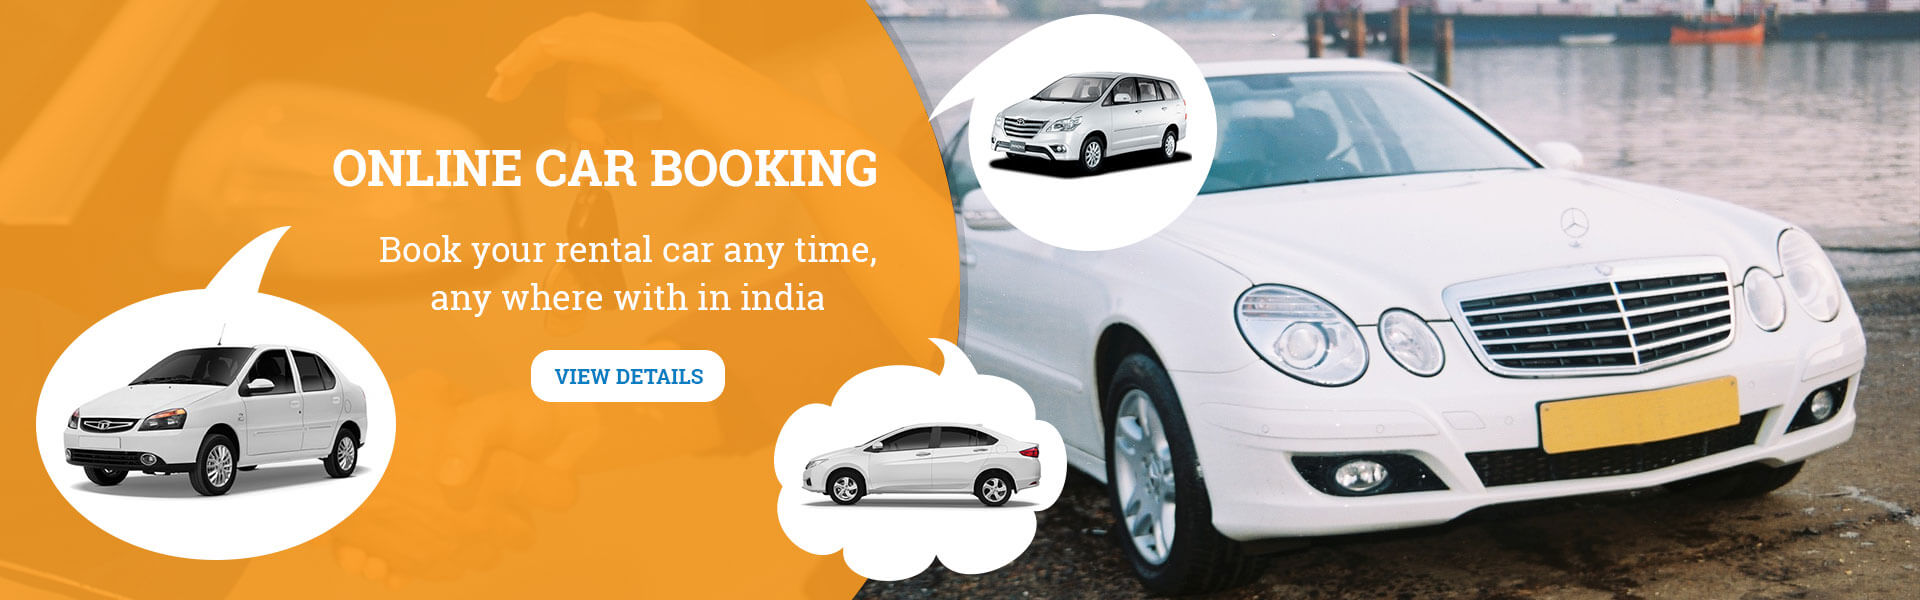 Car Rental Services by Maharaja Trails